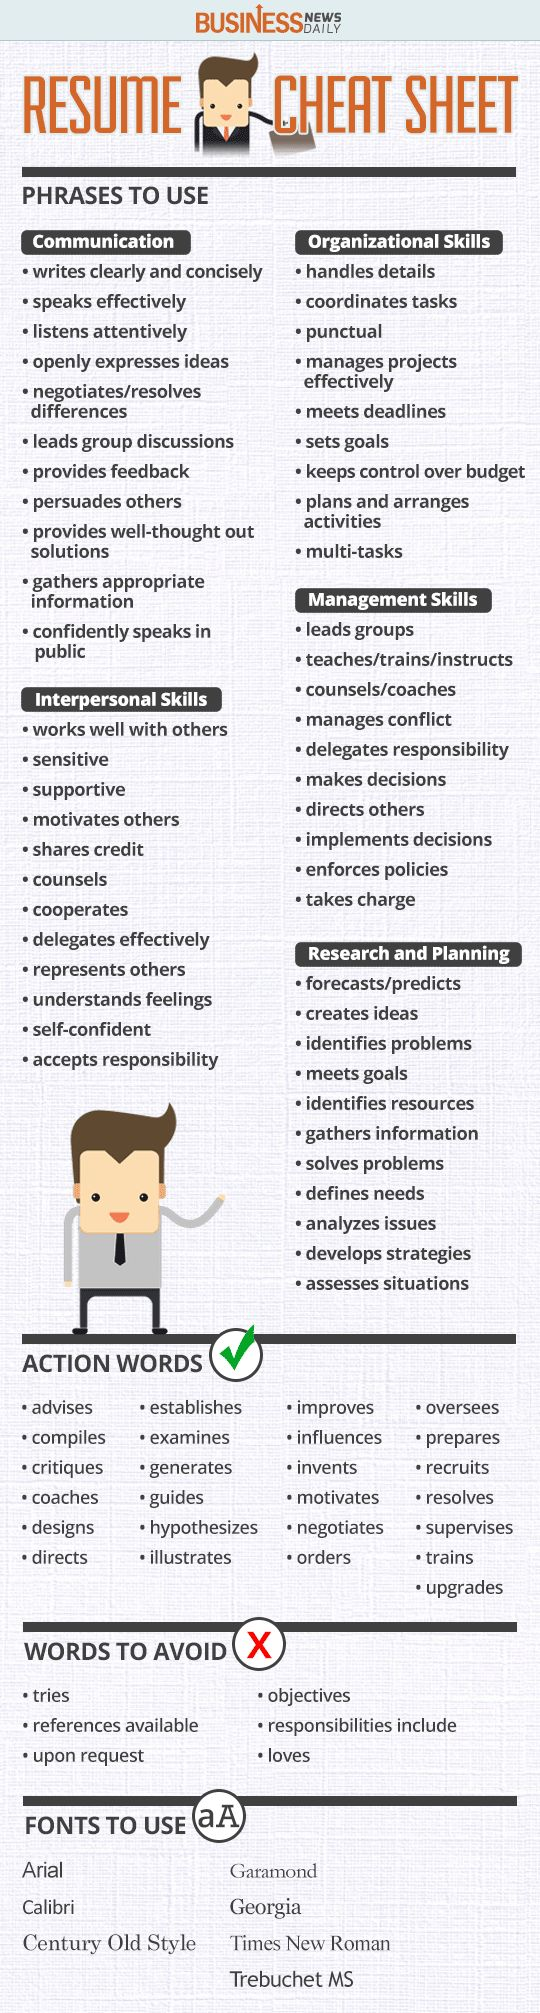 Opposenewapstandardsus  Inspiring  Ideas About Resume On Pinterest  Cv Format Resume Cv And  With Exquisite Resume Cheat Sheet Infographic Andrews Almost Done With A Complete Unit On Employment Which With Divine High School Student Resume Sample Also Scholarship Resume Examples In Addition How To Start Off A Resume And Resume Footer As Well As It Resume Format Additionally Resume For Property Manager From Pinterestcom With Opposenewapstandardsus  Exquisite  Ideas About Resume On Pinterest  Cv Format Resume Cv And  With Divine Resume Cheat Sheet Infographic Andrews Almost Done With A Complete Unit On Employment Which And Inspiring High School Student Resume Sample Also Scholarship Resume Examples In Addition How To Start Off A Resume From Pinterestcom